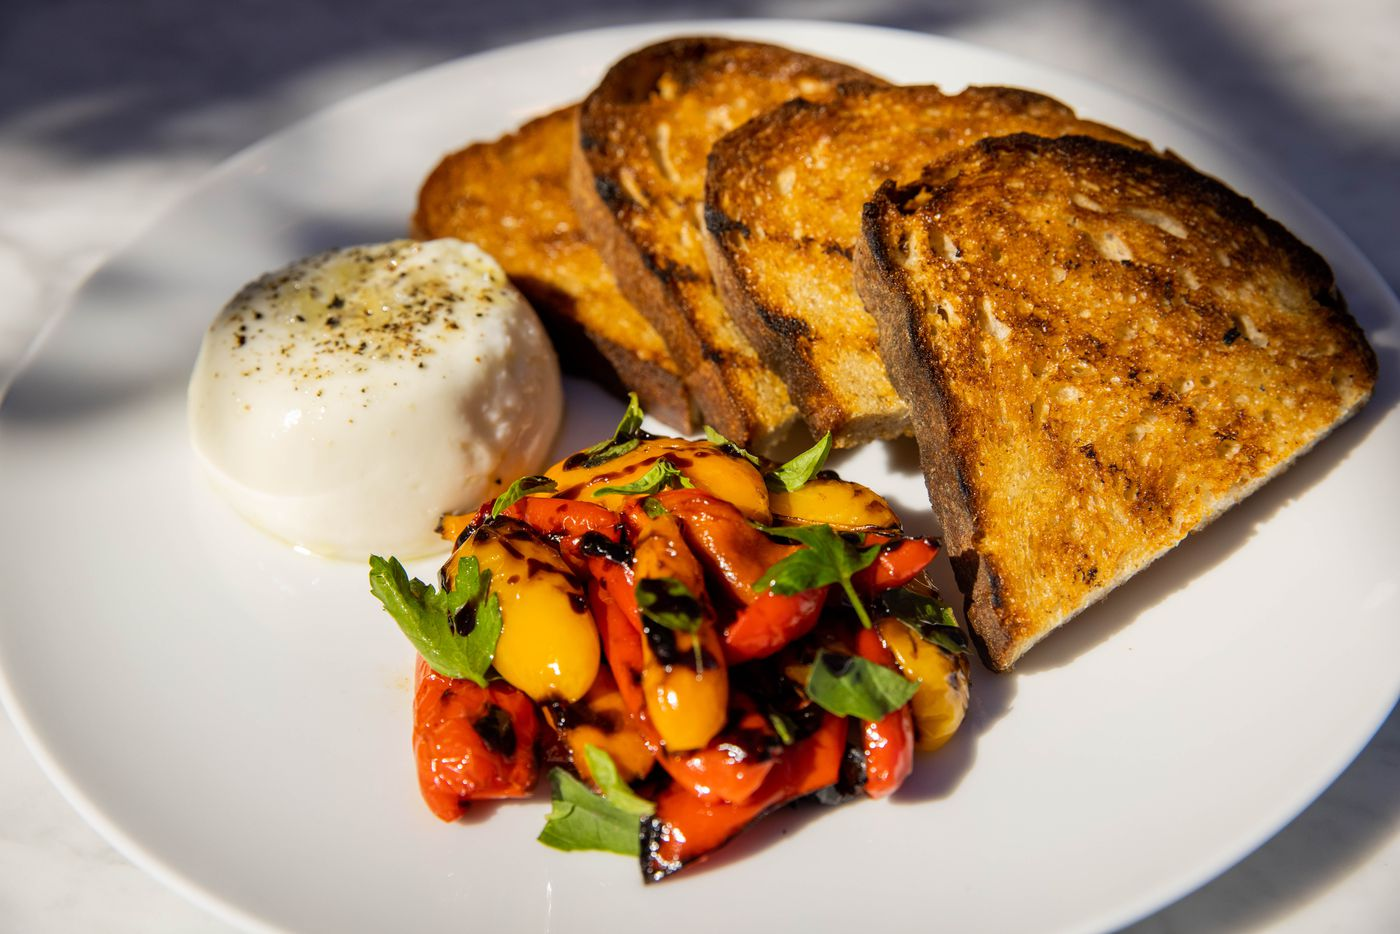 The Burrata with red peppers